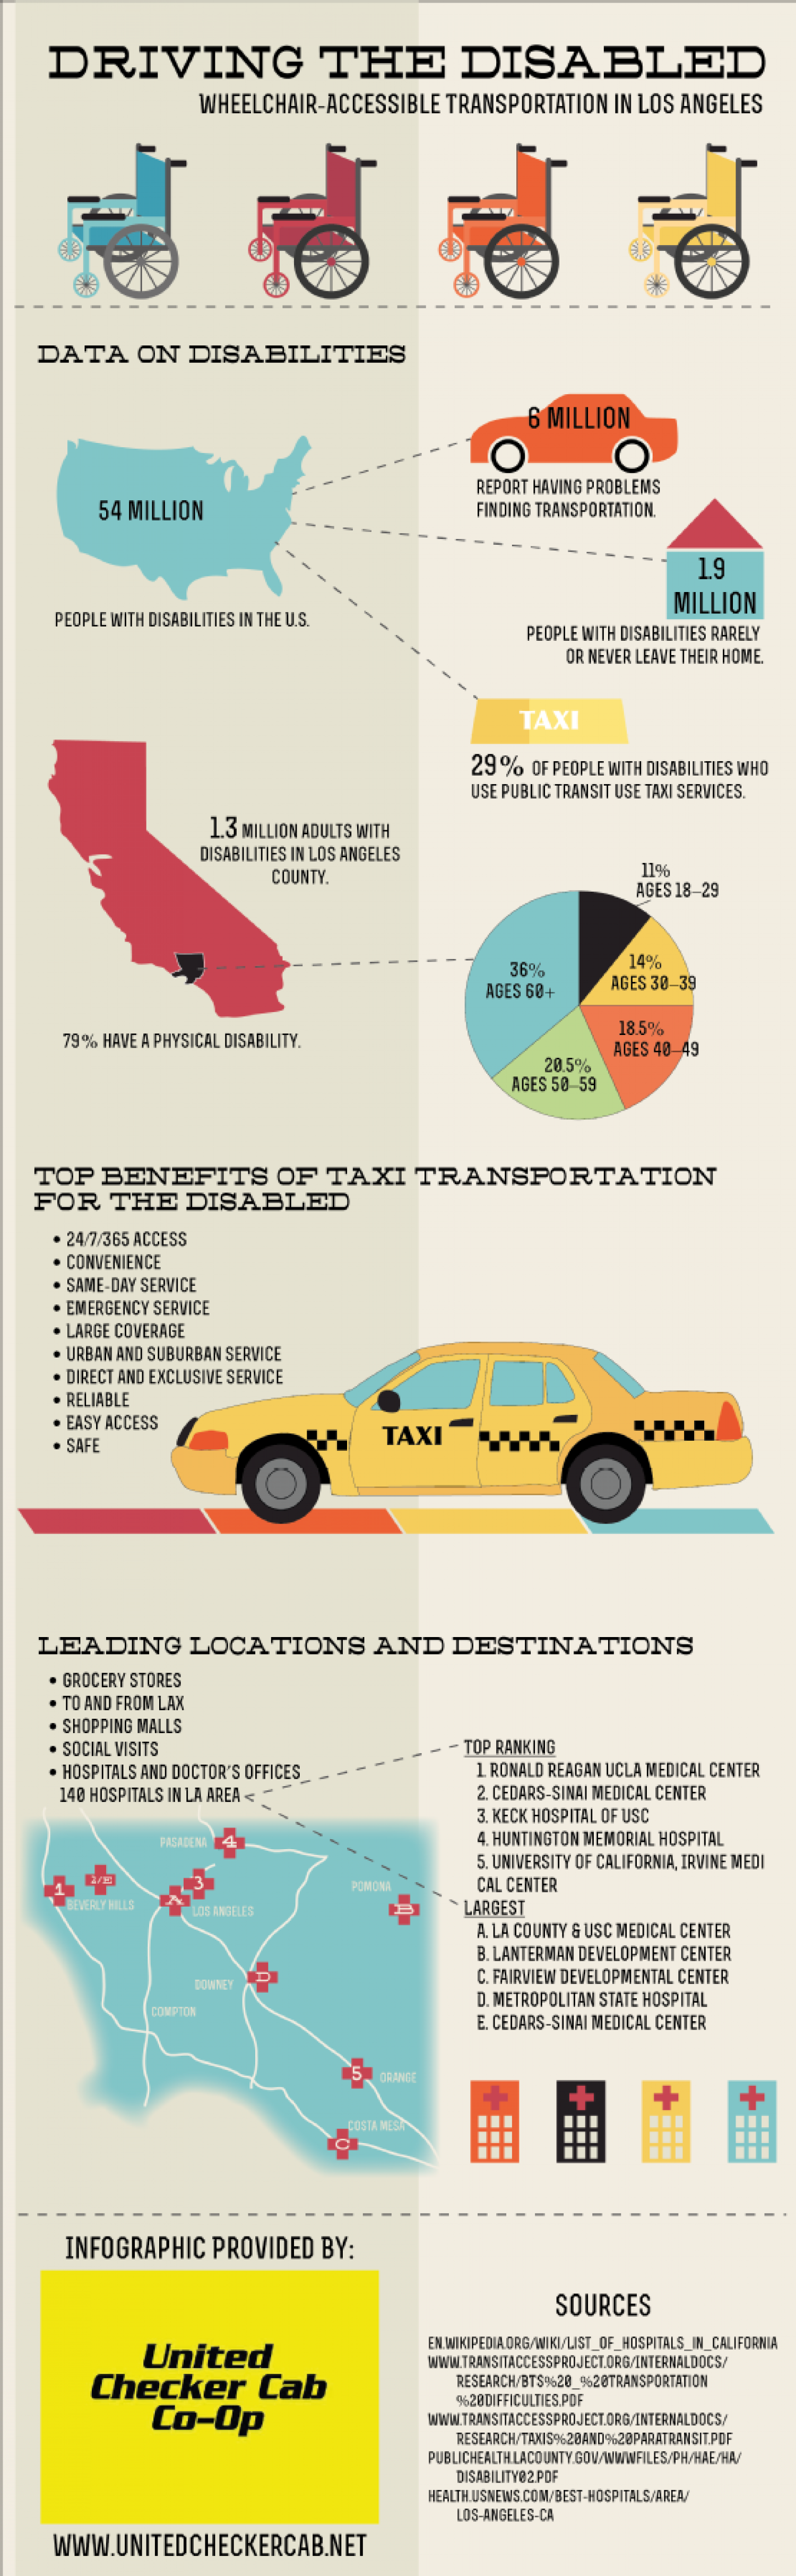 Driving the Disabled: Wheelchair-Accessible Transportation in Los Angeles Infographic